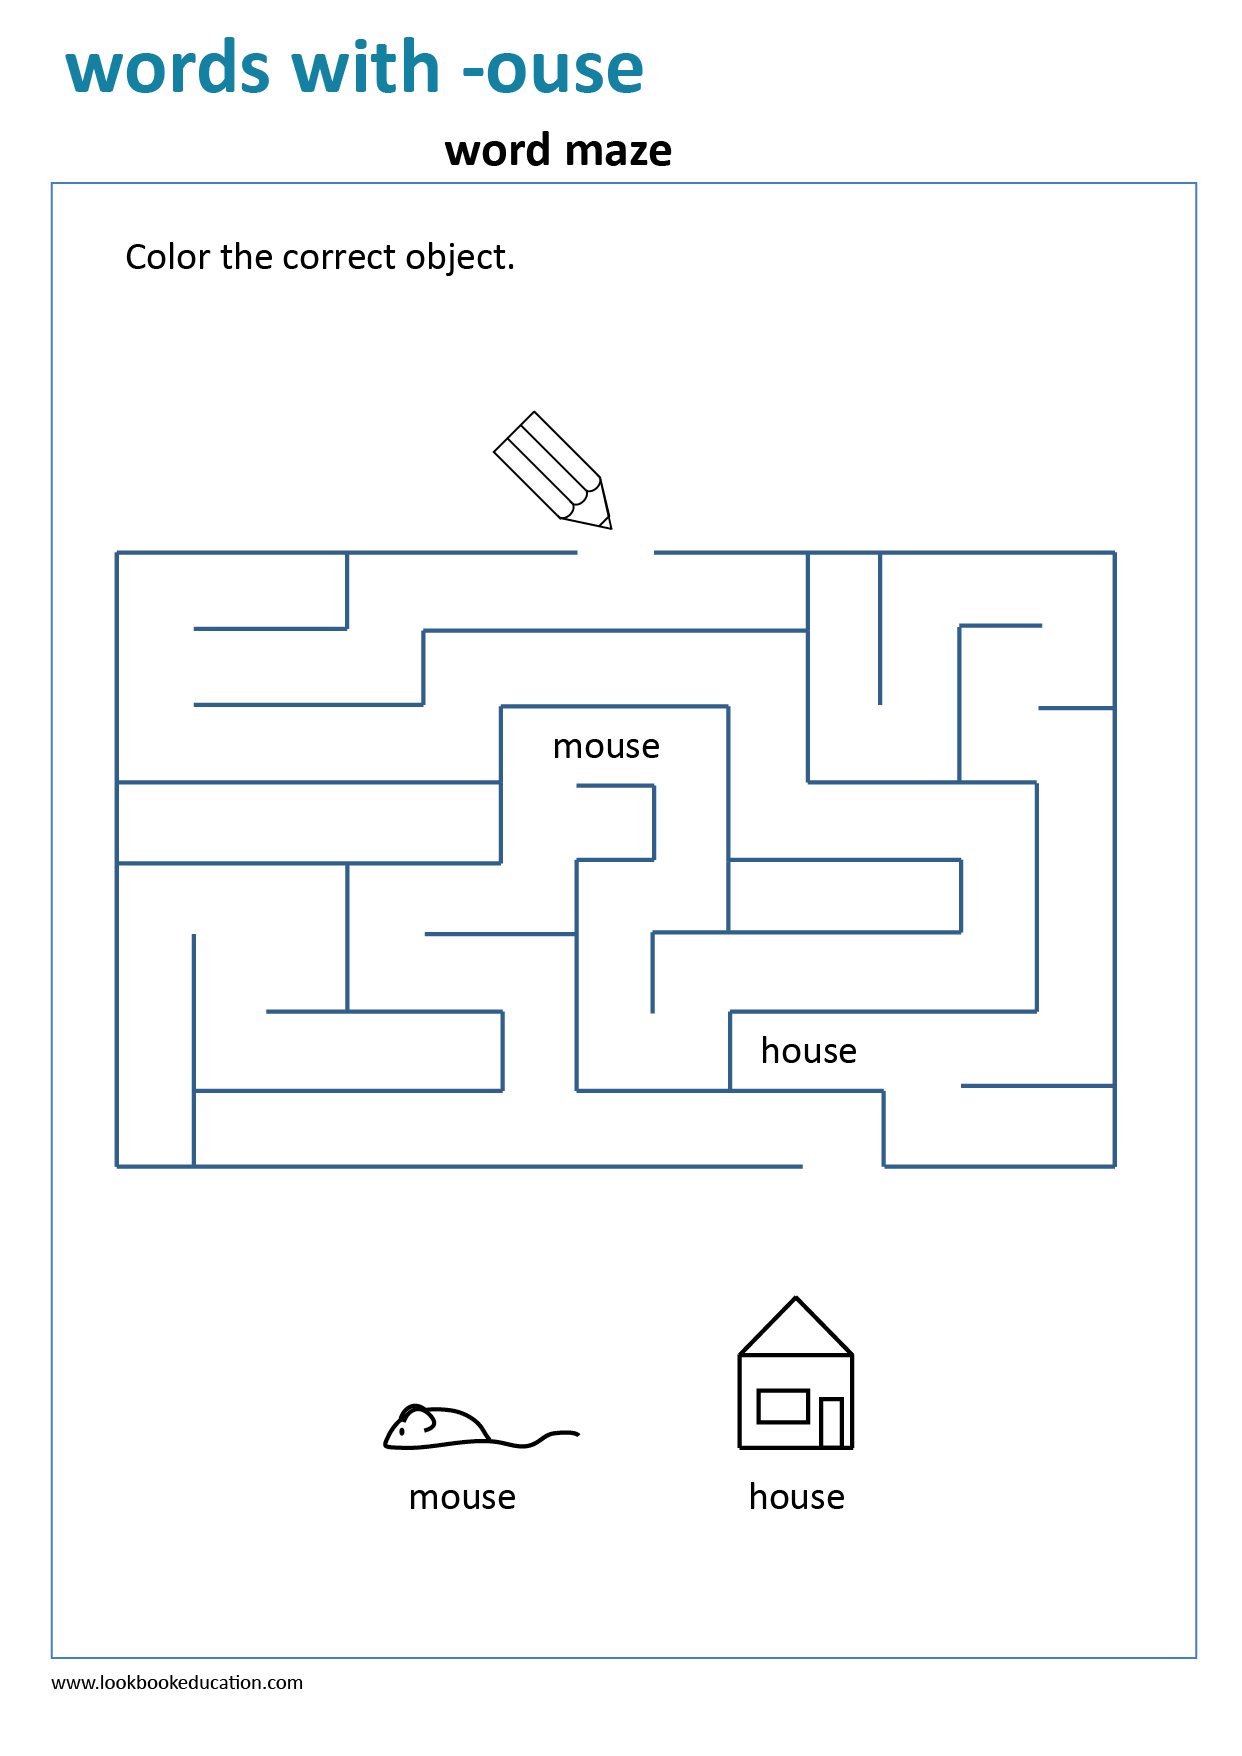 Worksheet Words With Ouse Maze